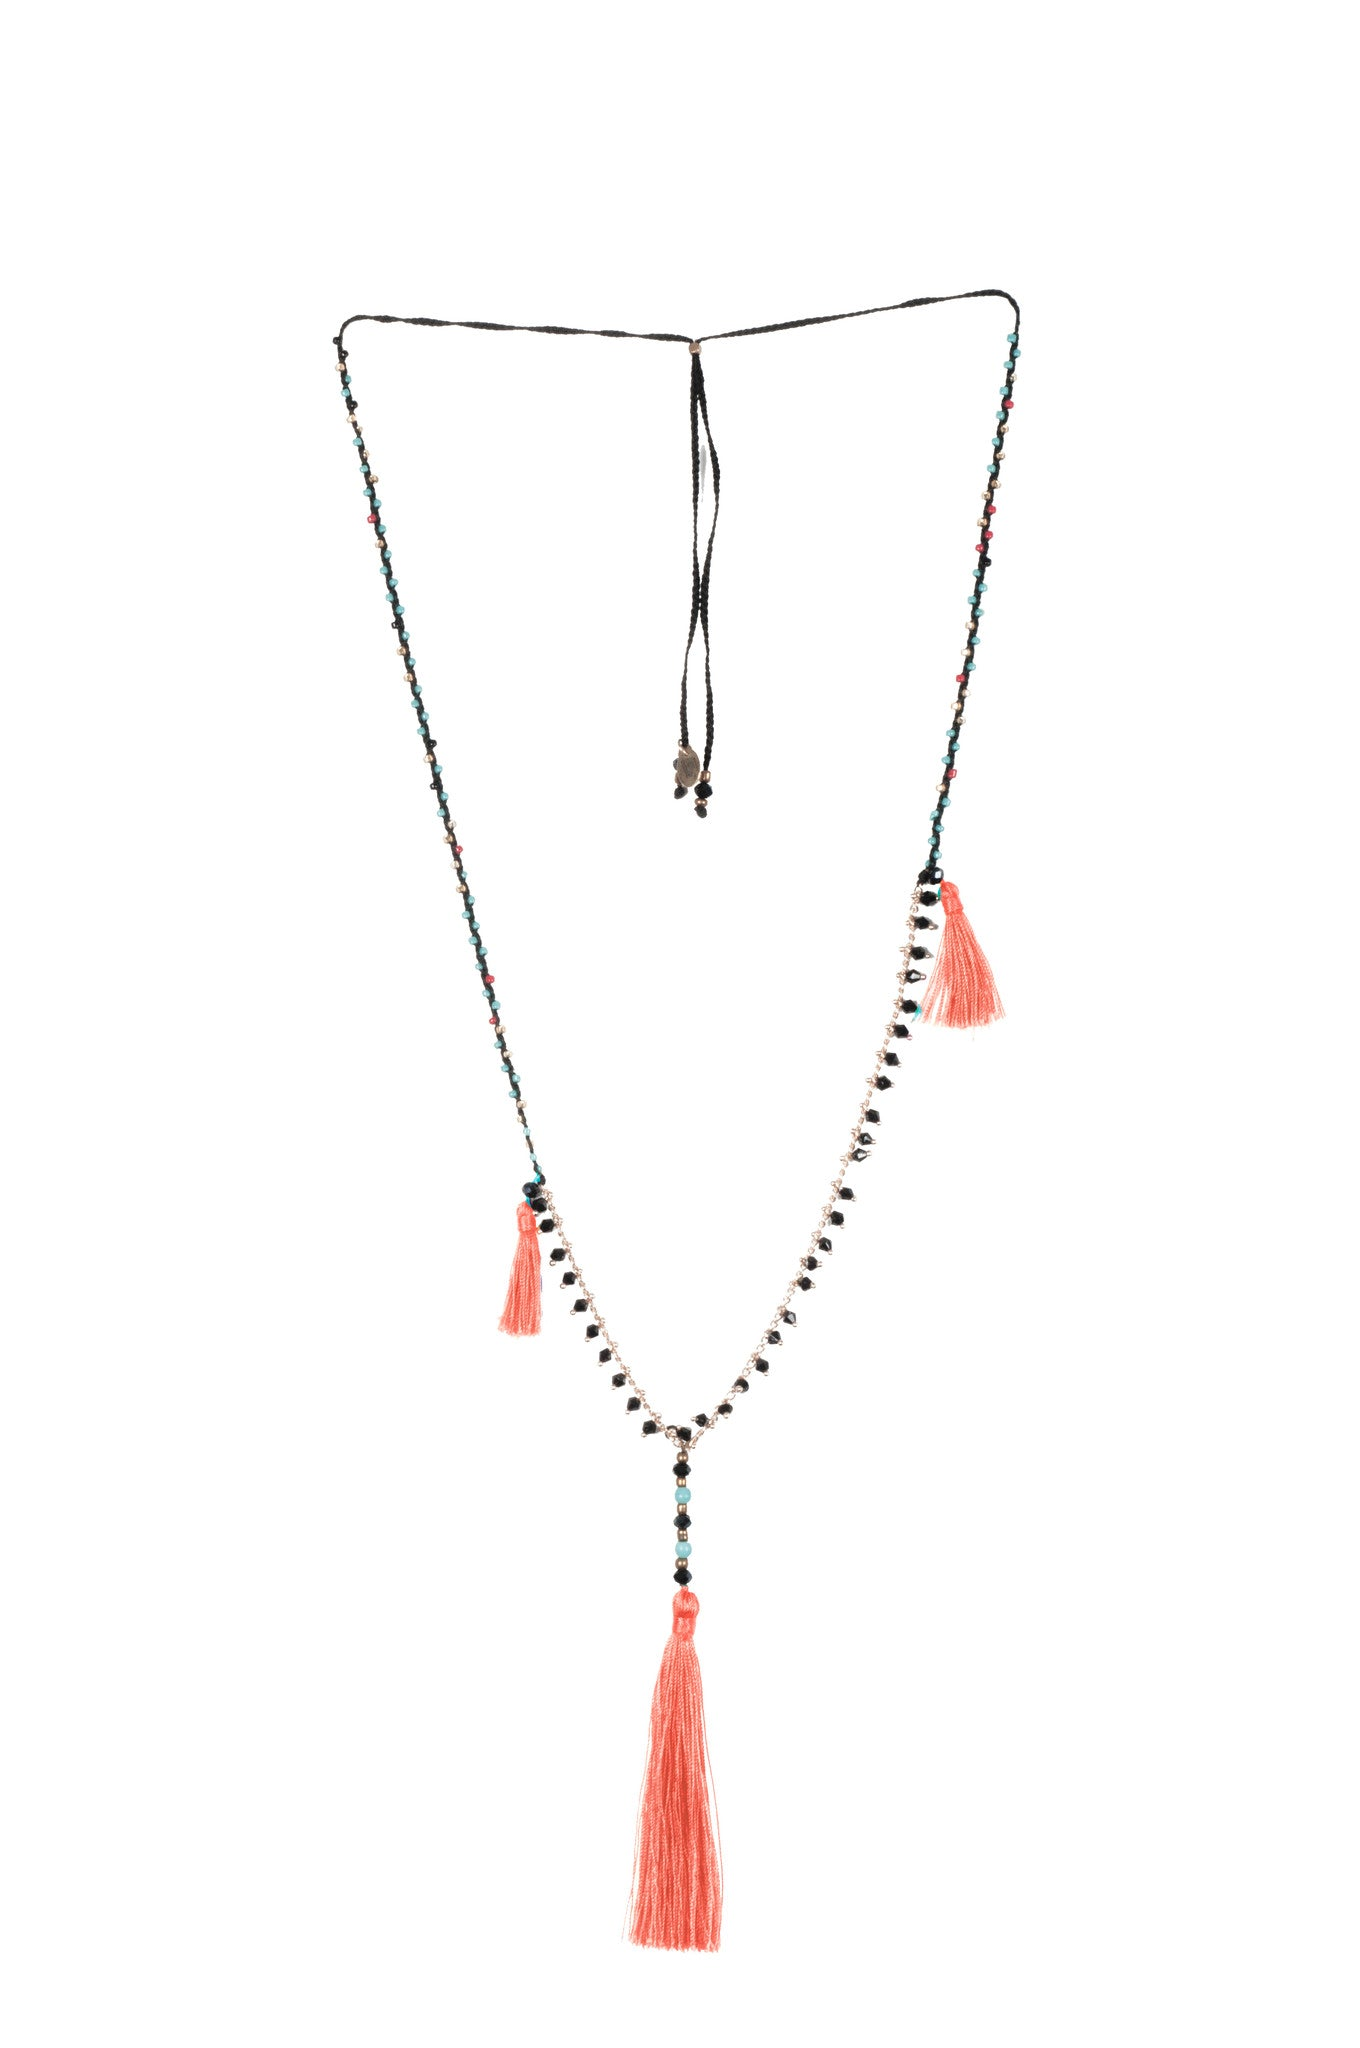 Coral Adjustable Necklace made of delicate crystal pearls, Copper chain completed by three vibrant nylon tassels